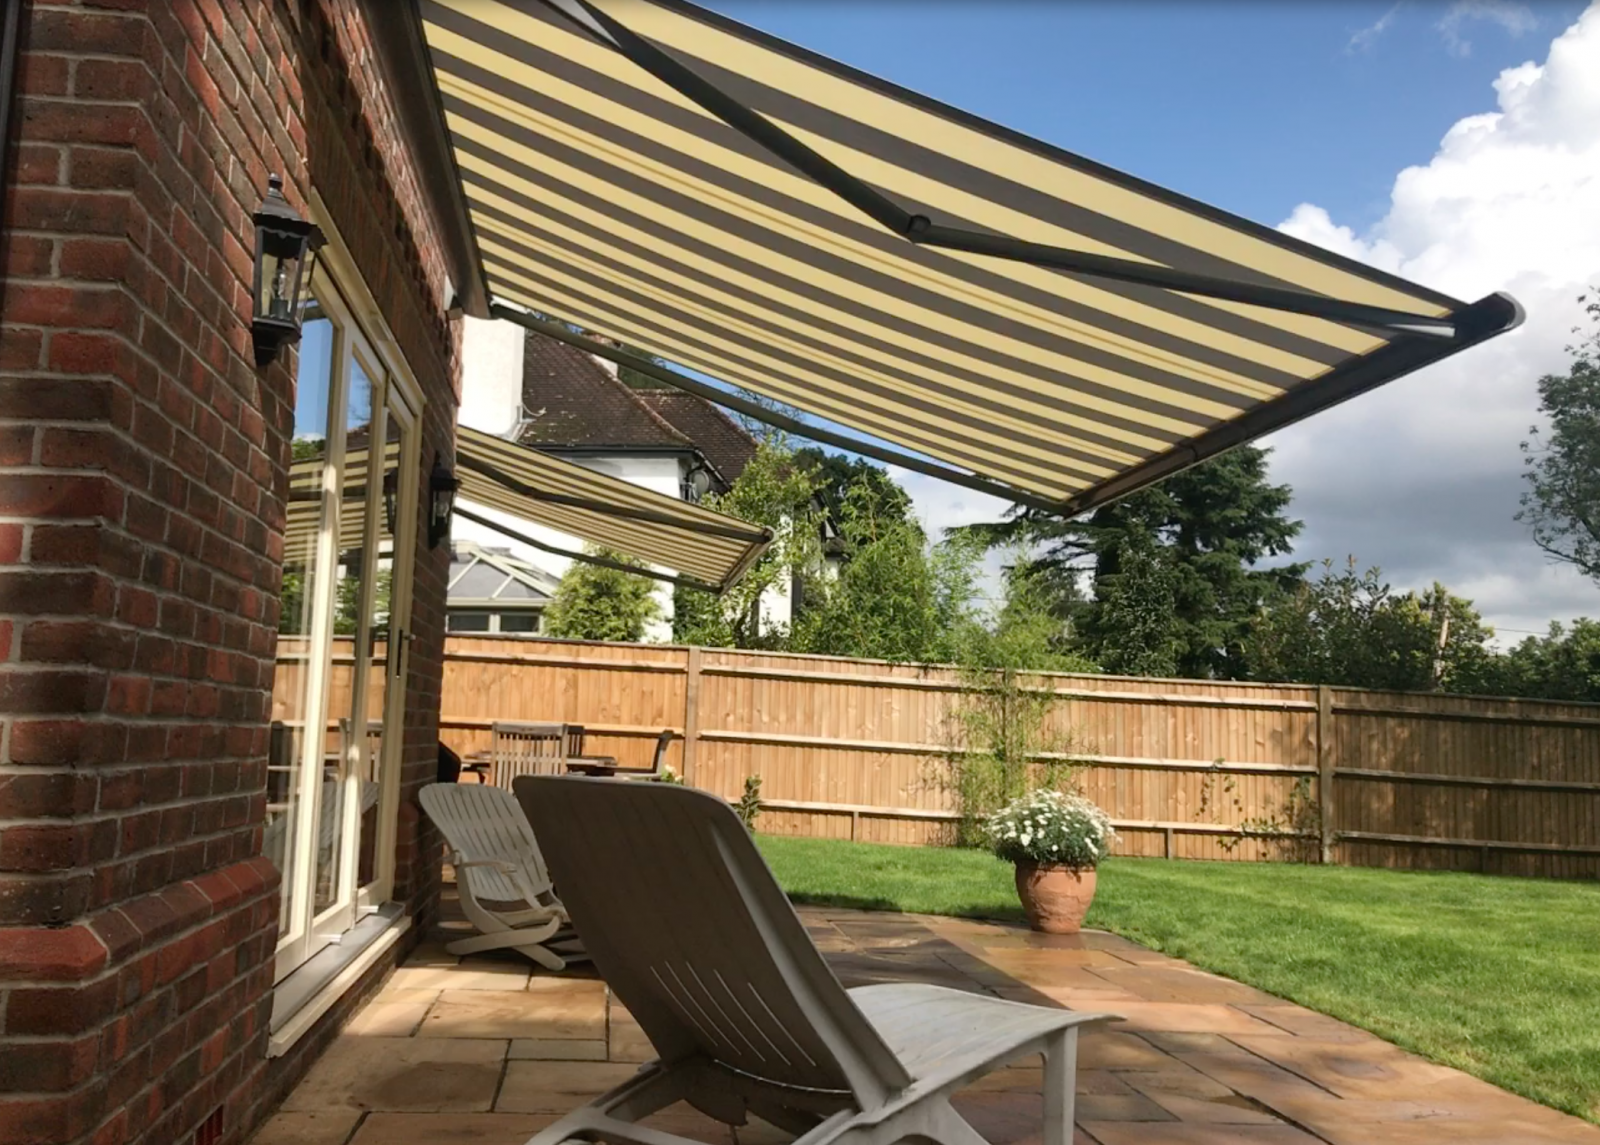 Electric Awnings Installed in Ampfield, Romsey, Hampshire by Awningsouth